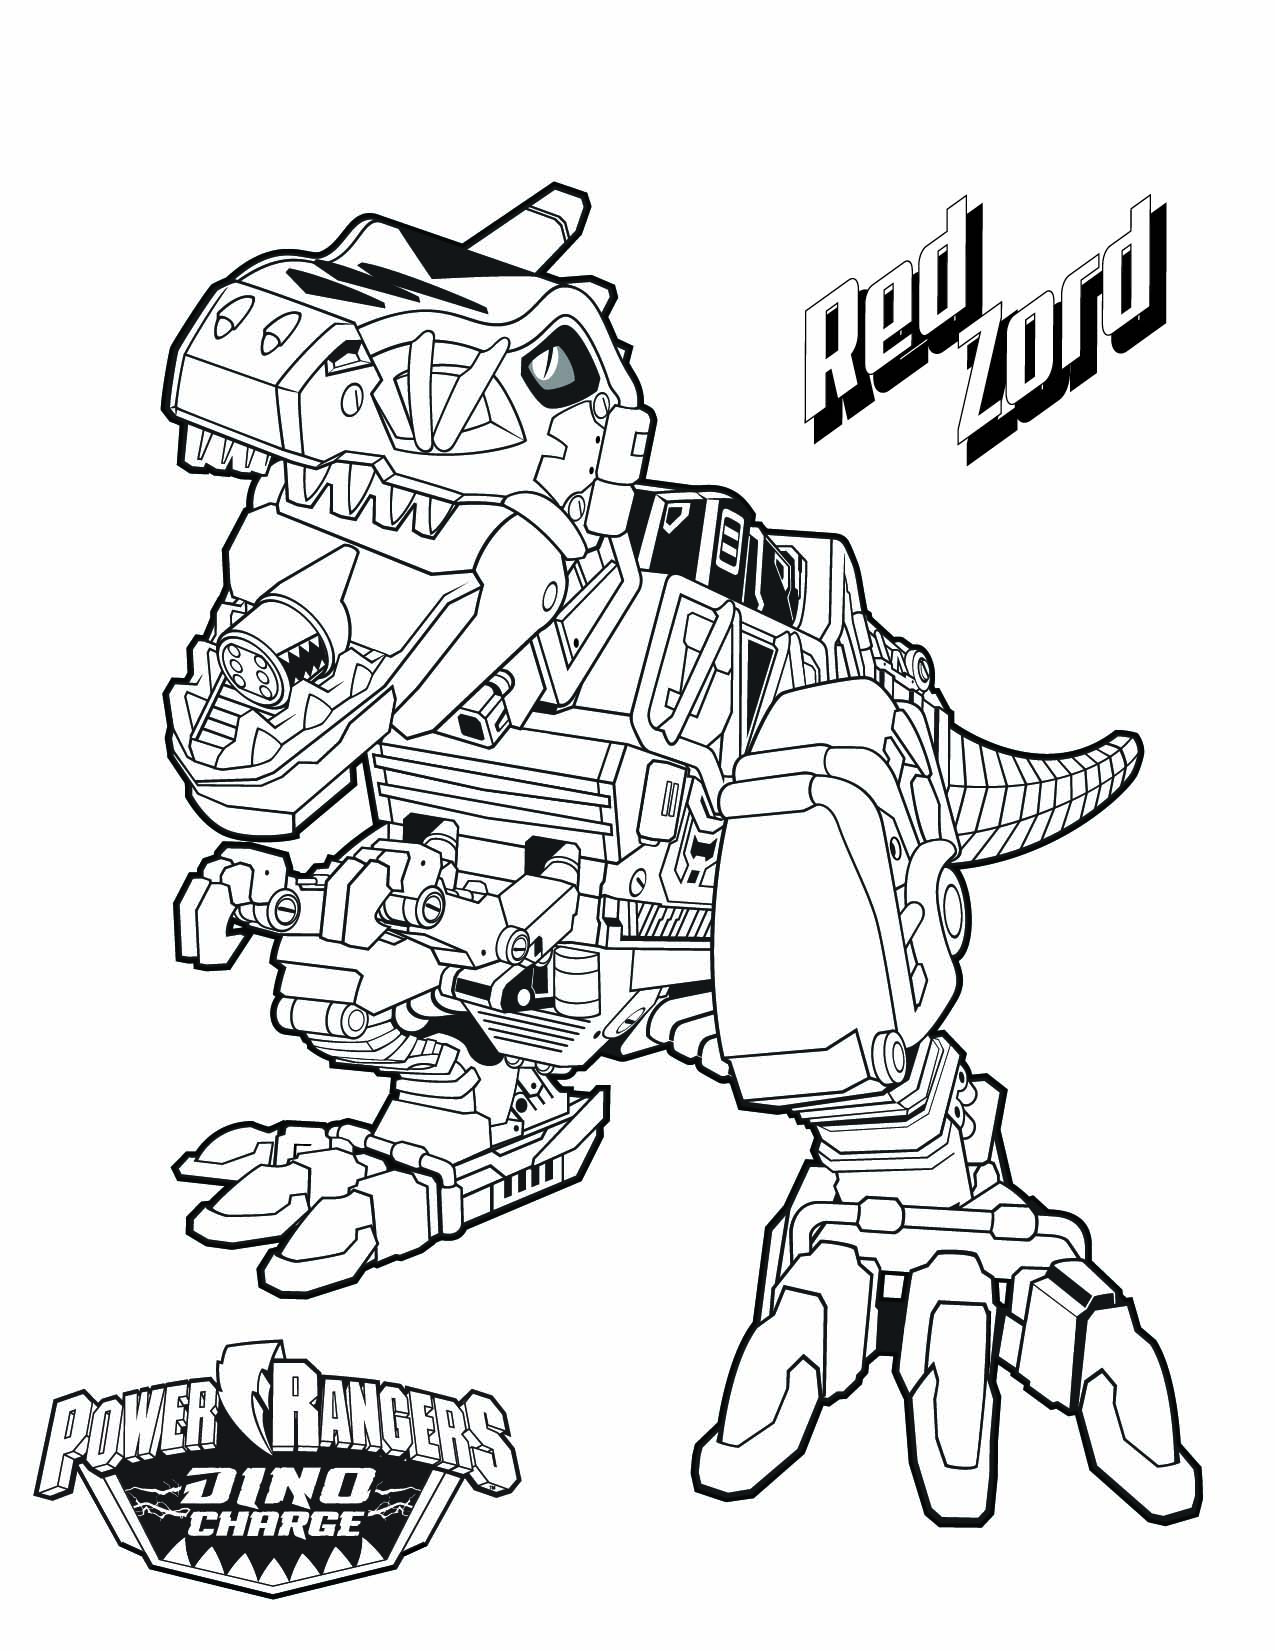 1275x1651 Improved Red Power Ranger Coloring Page Rangers Holding A Sword